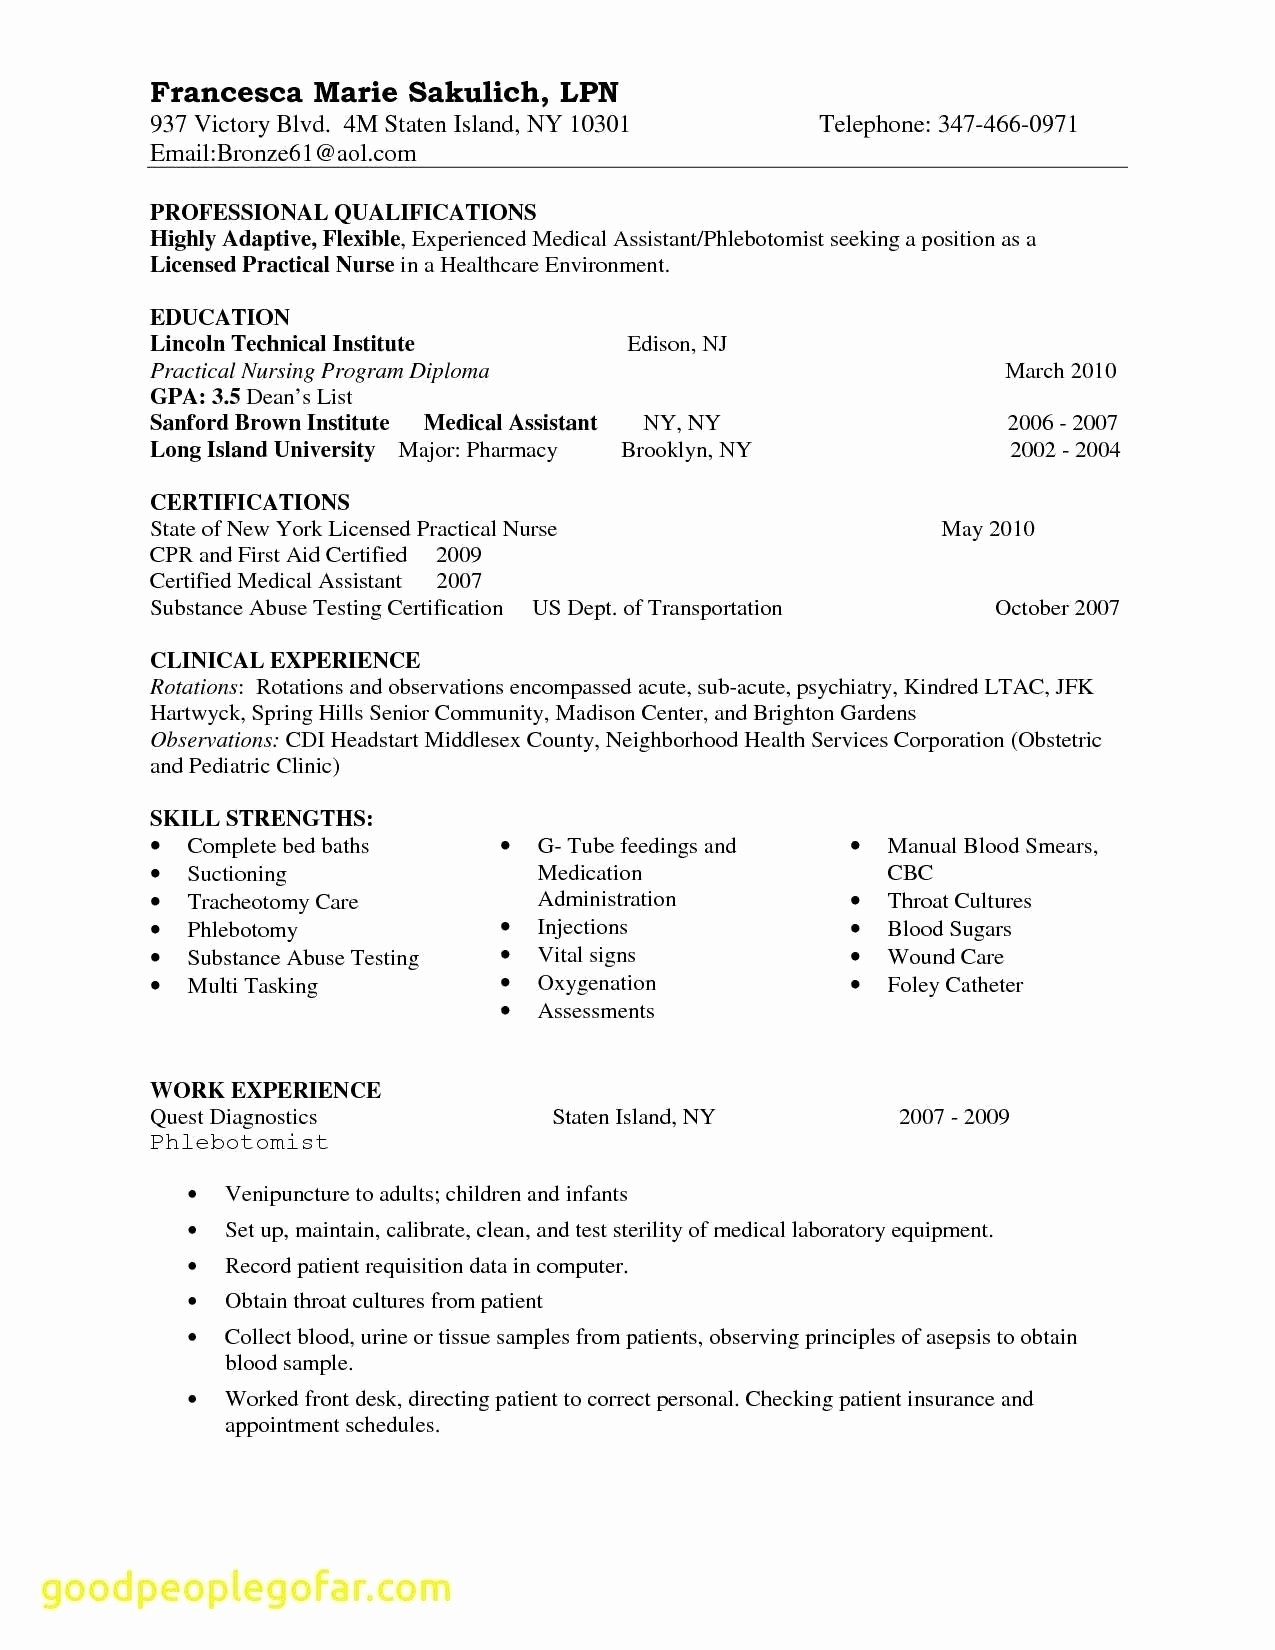 Healthcare Management Resume - Resume for Job Application New Dean Health Madison Wi Lovely Sample